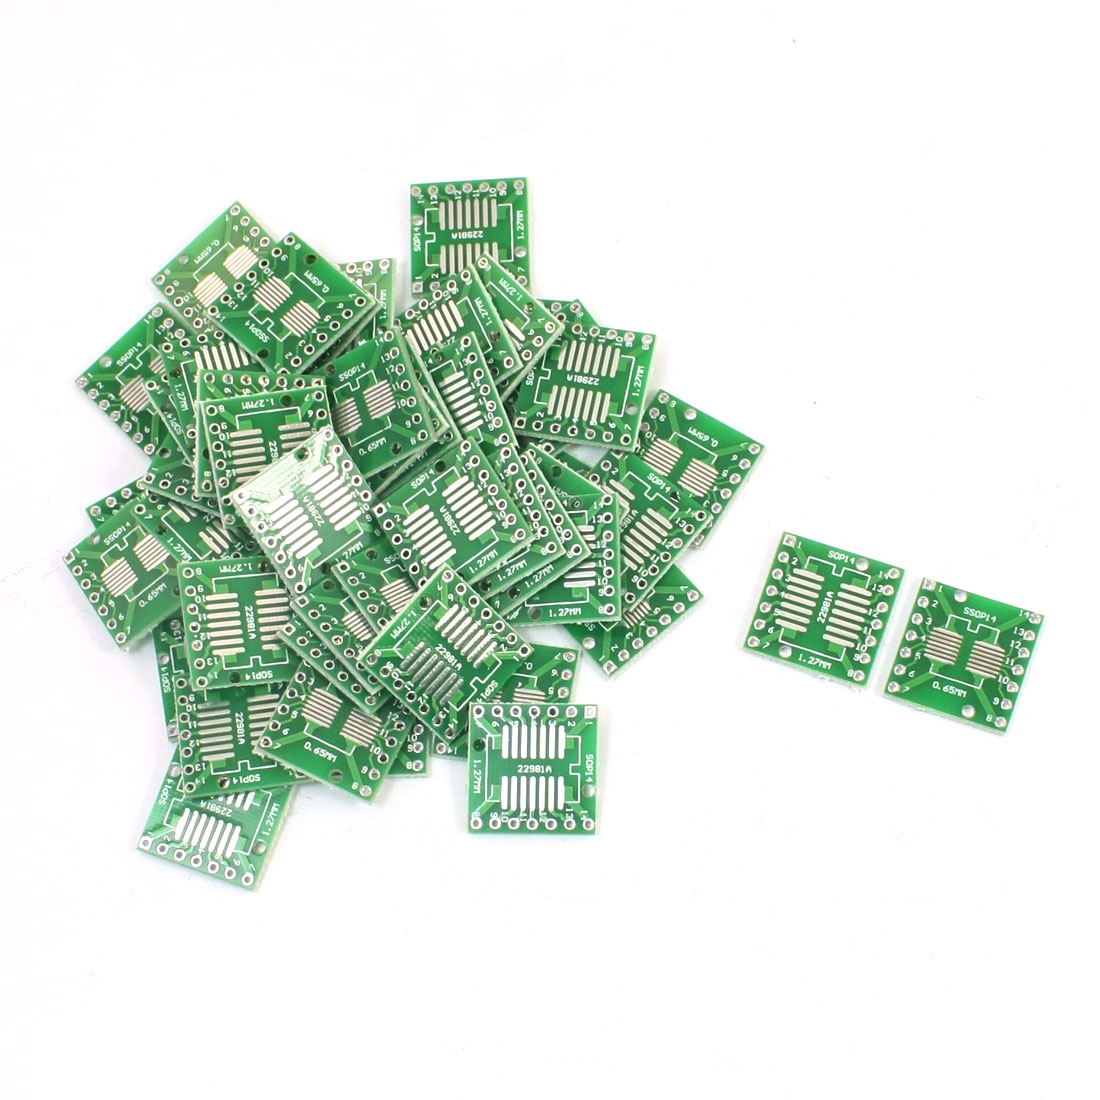 50PCS SMD SOP14 to DIP14 PCB SMD Adapter Plate Pitch 0.65/1.27mm